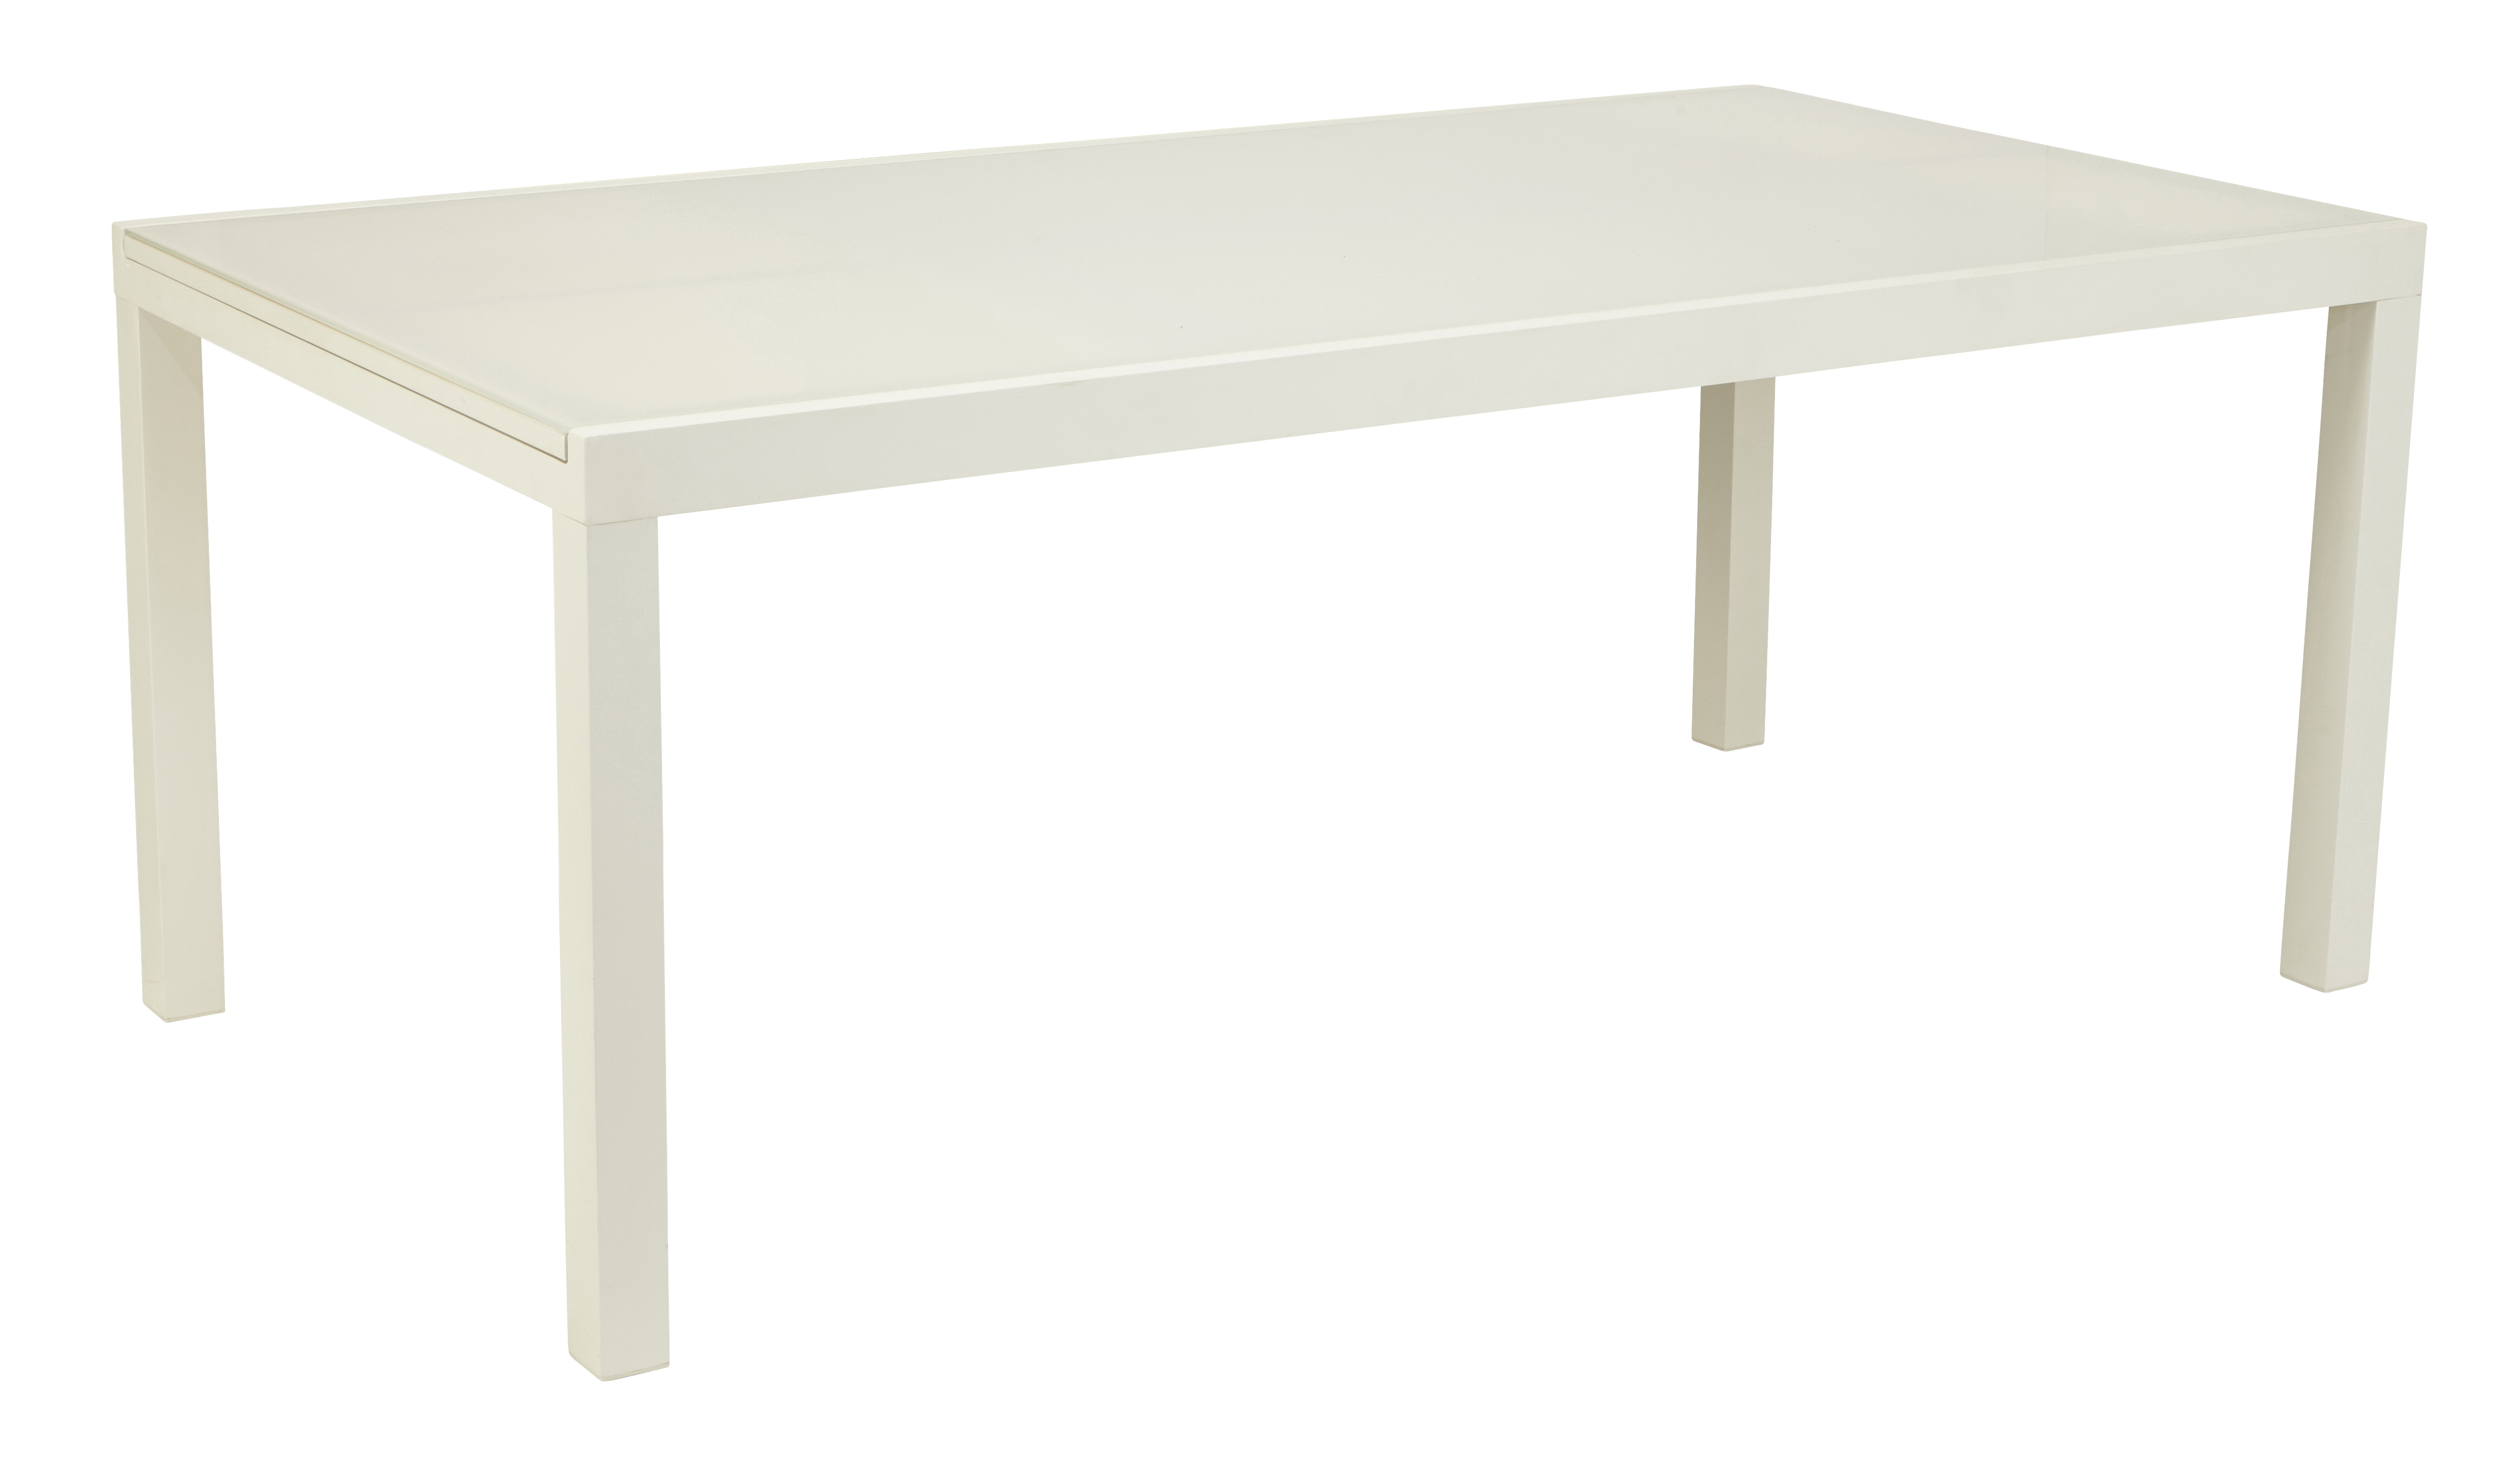 Salon De Jardin Table En Verre Avec Rallonge Table Tello Extensible 190 300 Taupe